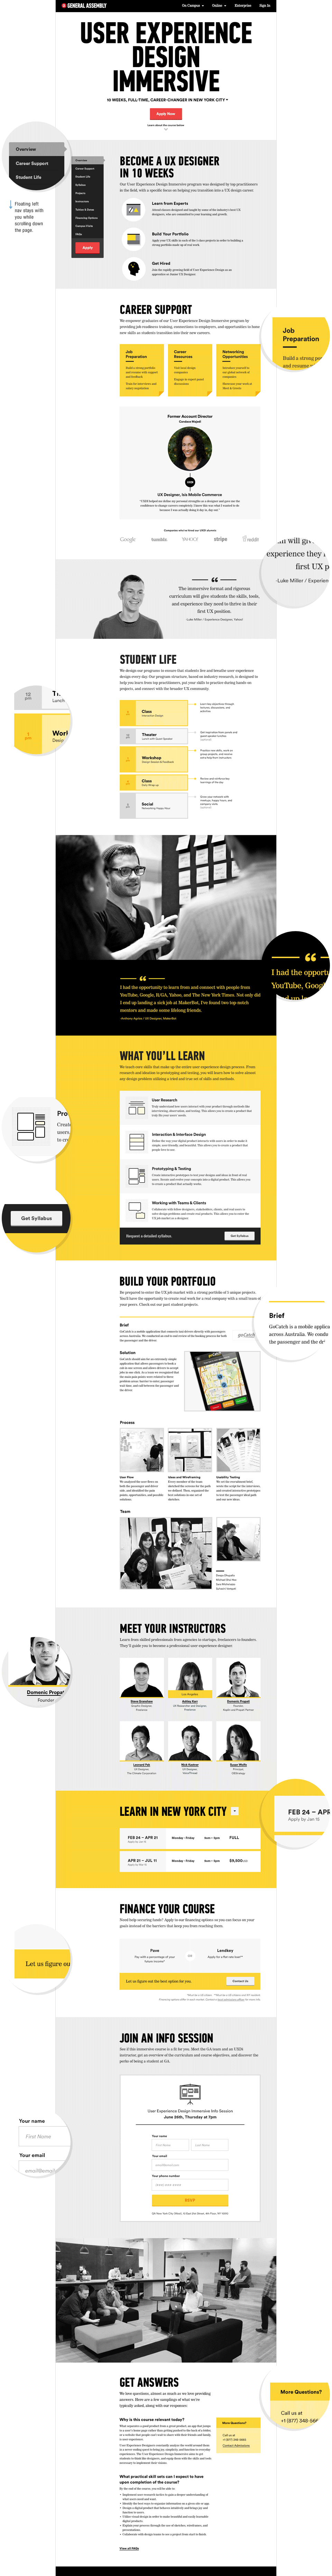 General Assembly: UXDI landing page